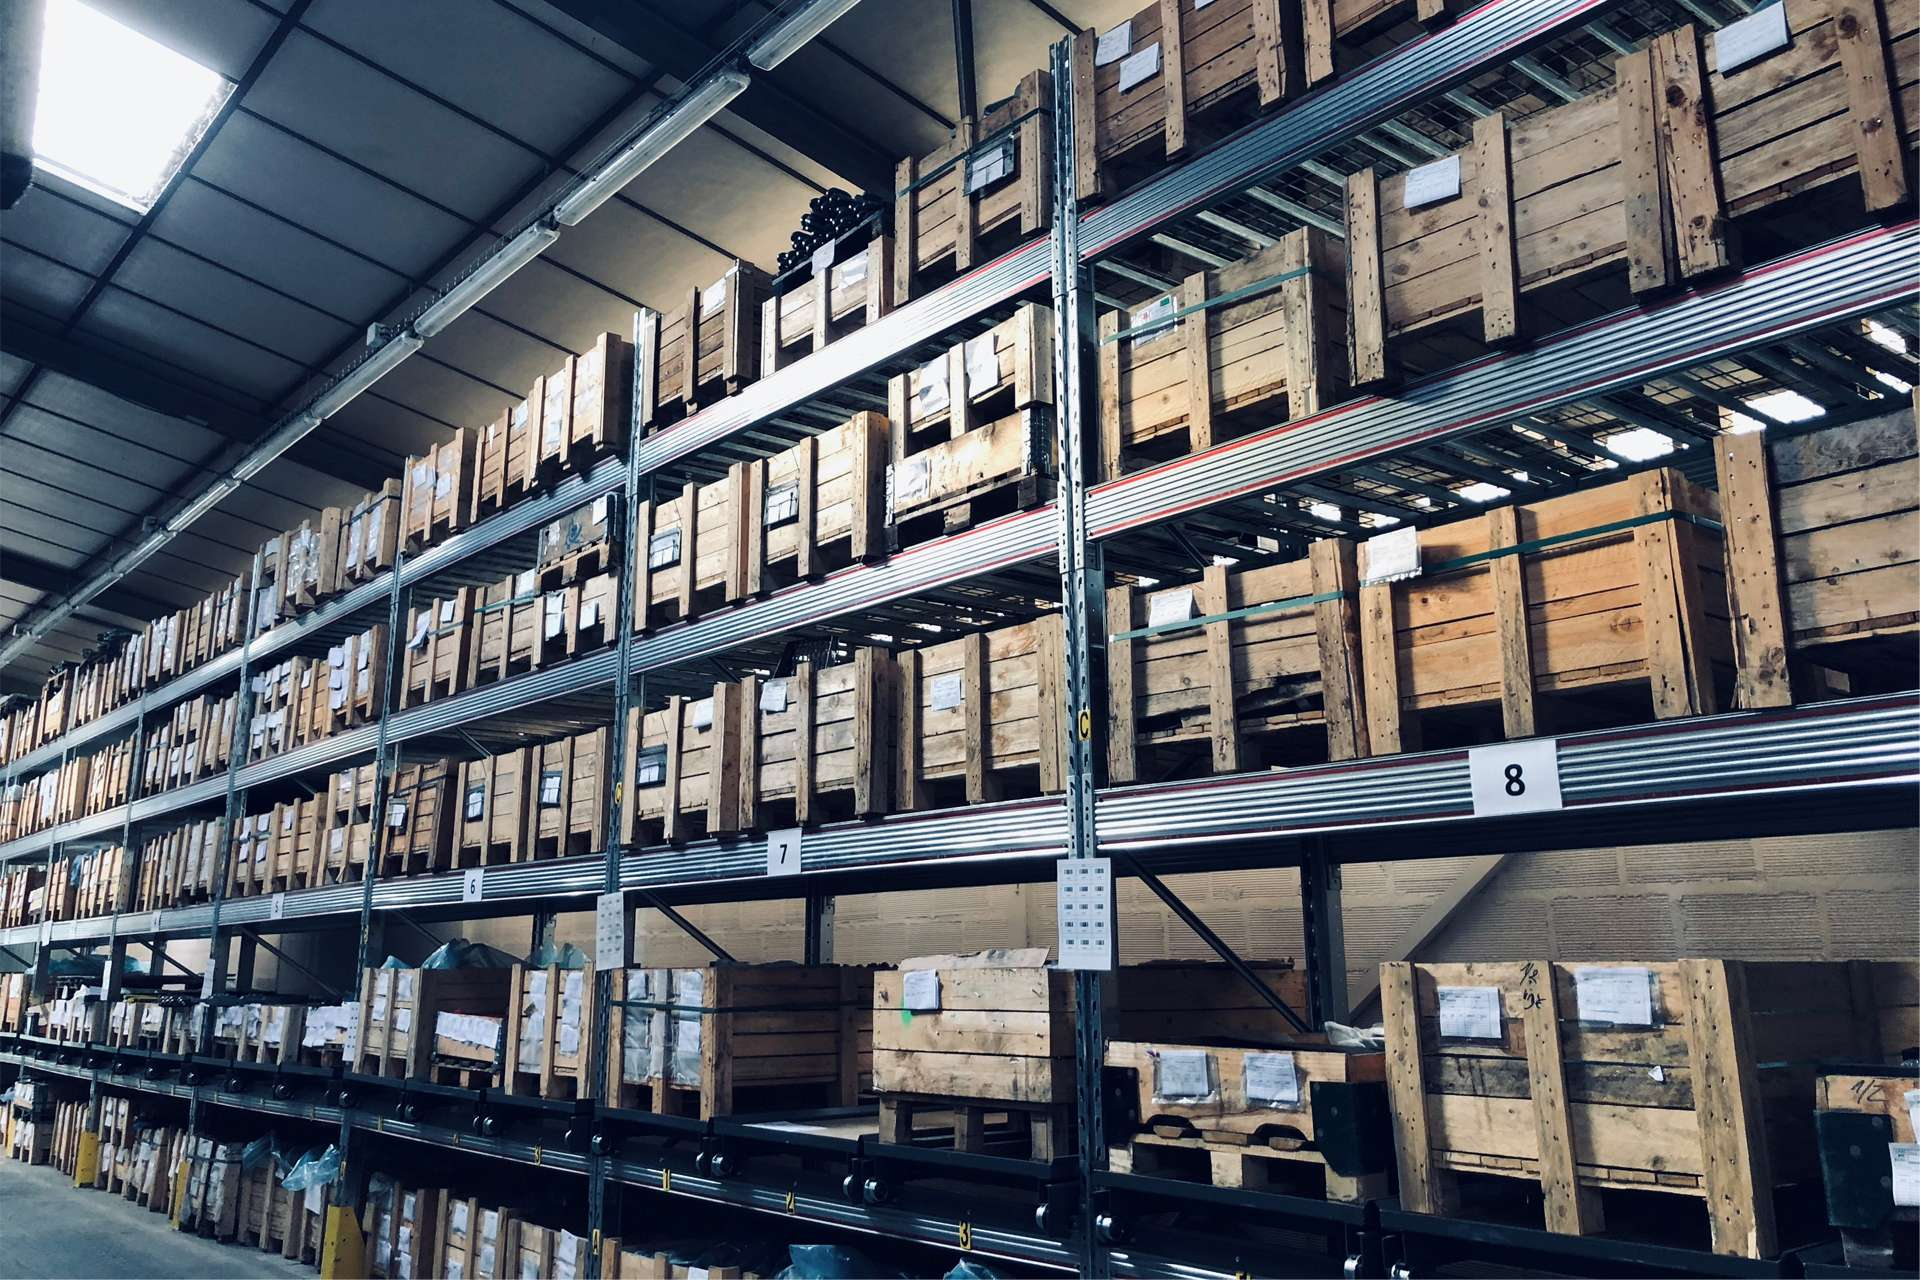 Stockage_1_res